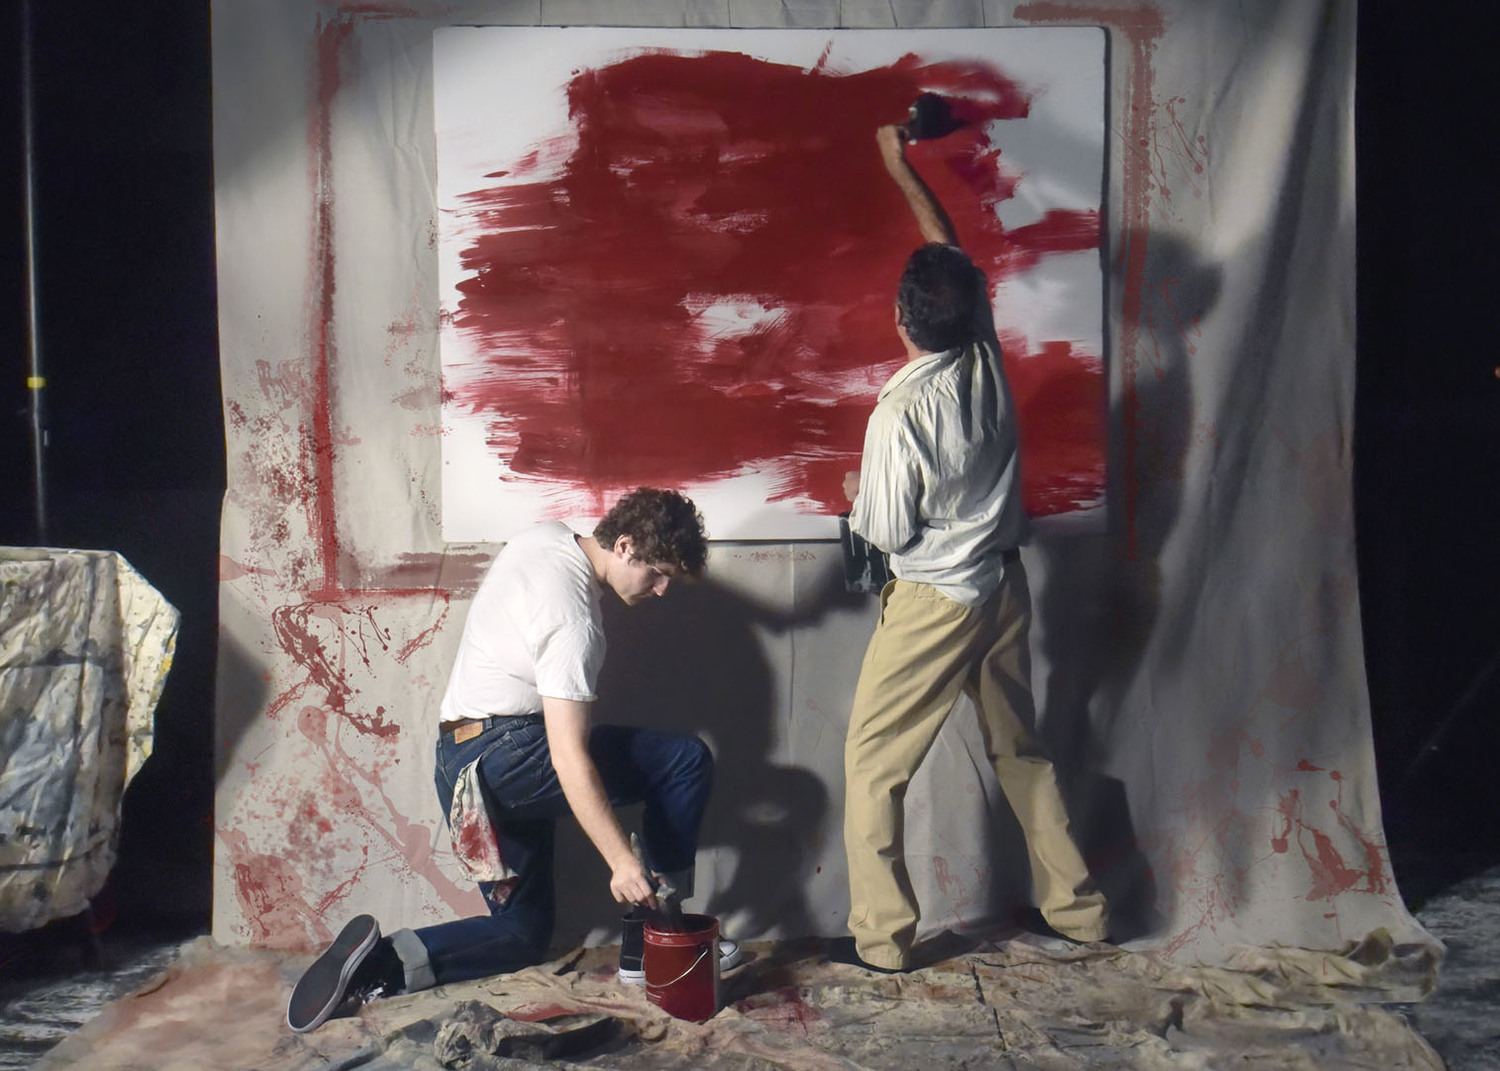 Actors' Theatre Presents Acclaimed Broadway Play RED About Artist Mark Rothko